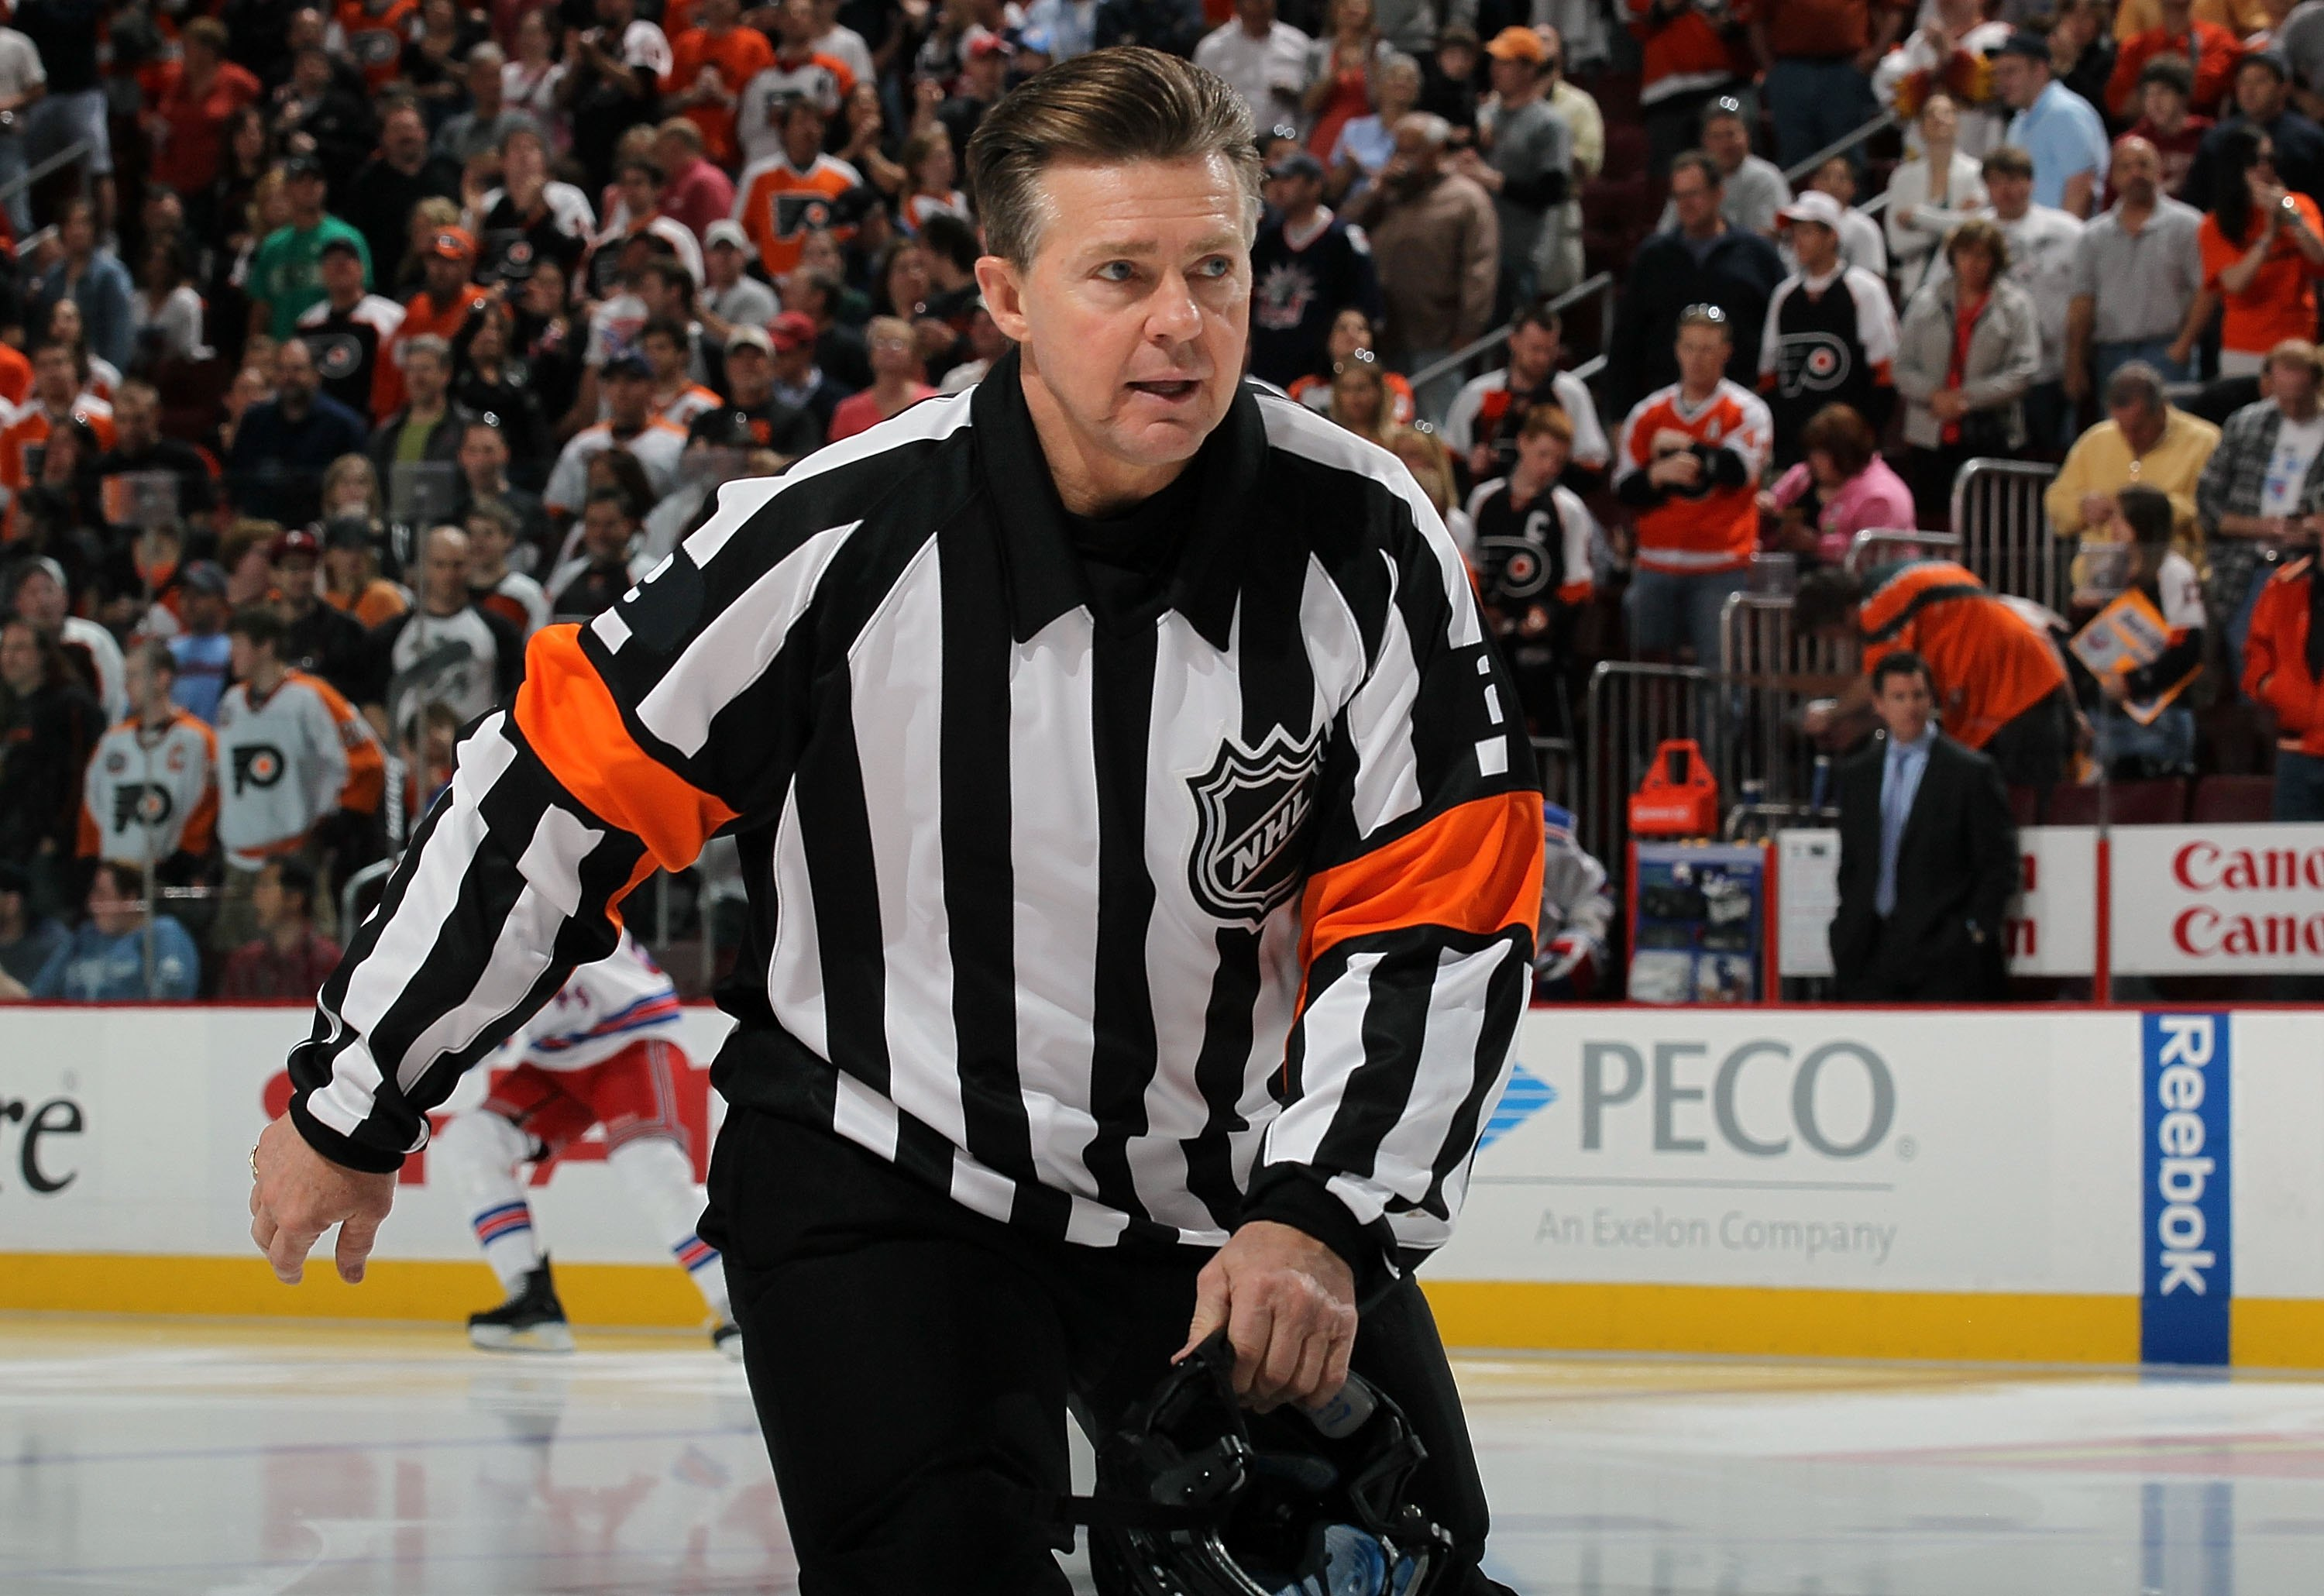 PHILADELPHIA - APRIL 11:  Referee Kerry Fraser #2 takes the ice for the game between the New York Rangers and the Philadelphia Flyers on April 11, 2010 at Wachovia Center in Philadelphia, Pennsylvania. The game was Fraser's last in the NHL as he is retiri